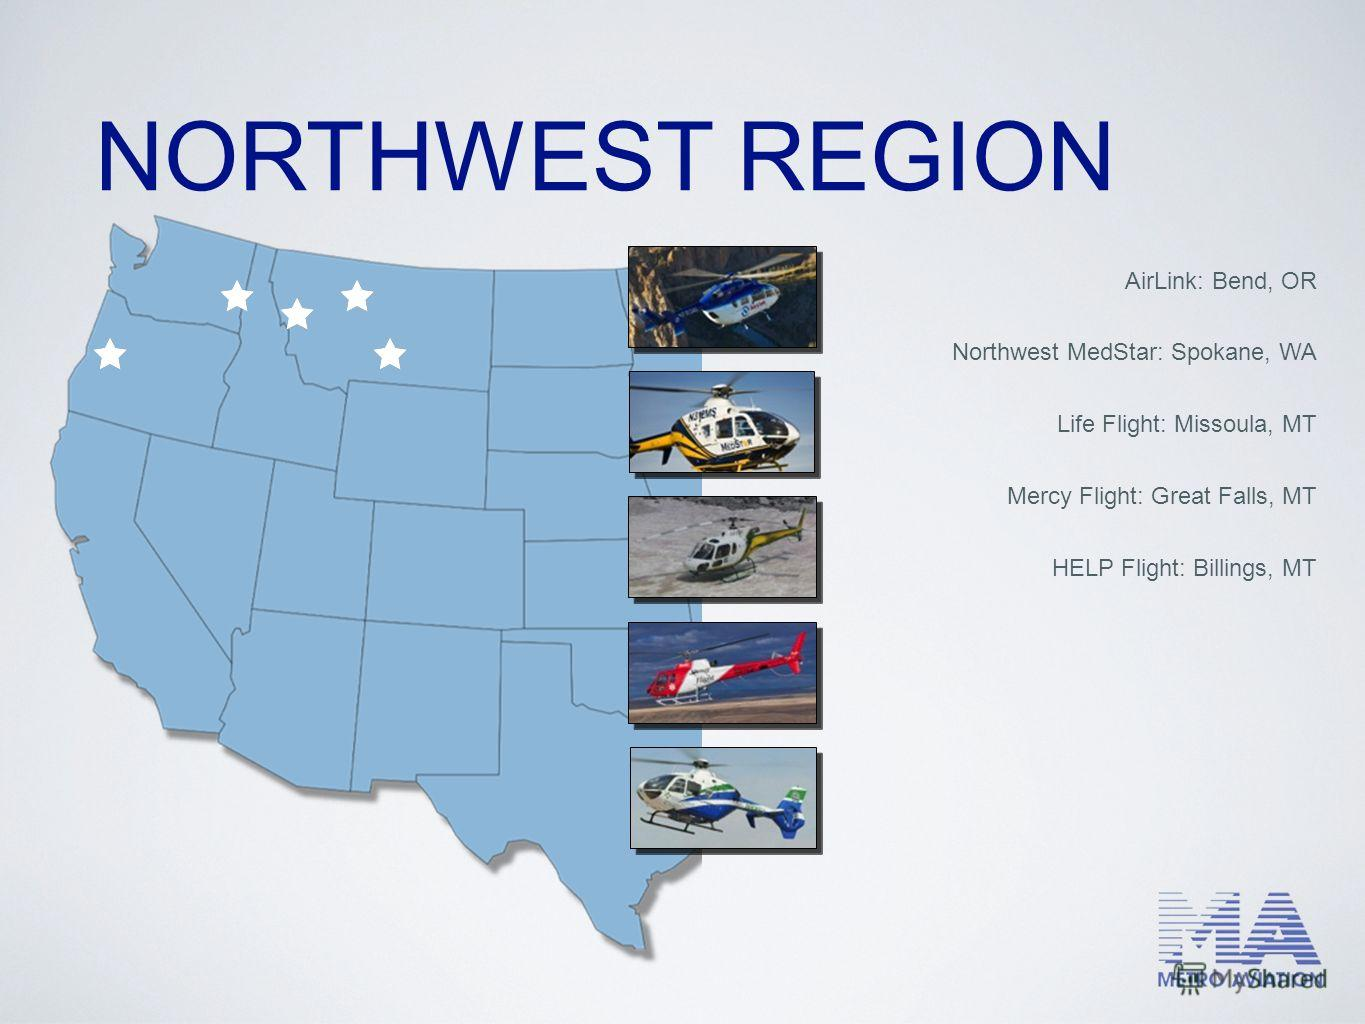 AirLink: Bend, OR Northwest MedStar: Spokane, WA Life Flight: Missoula, MT Mercy Flight: Great Falls, MT HELP Flight: Billings, MT NORTHWEST REGION